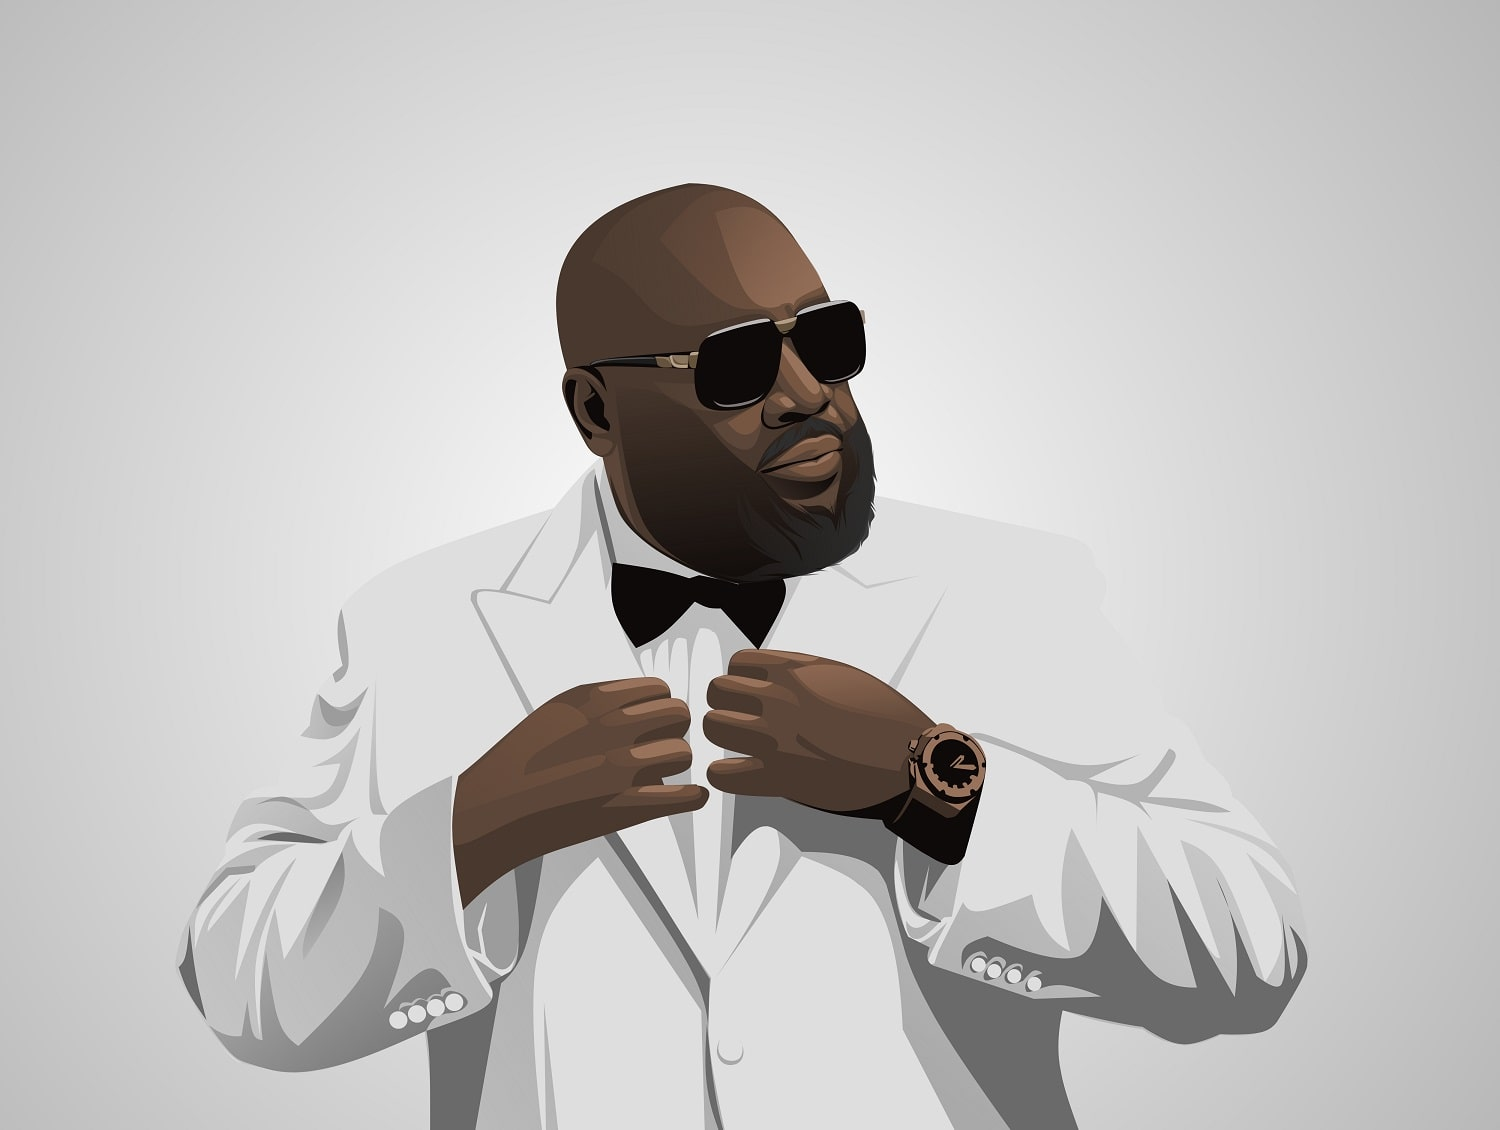 Rick Ross Copyright by Inspirationfeed.